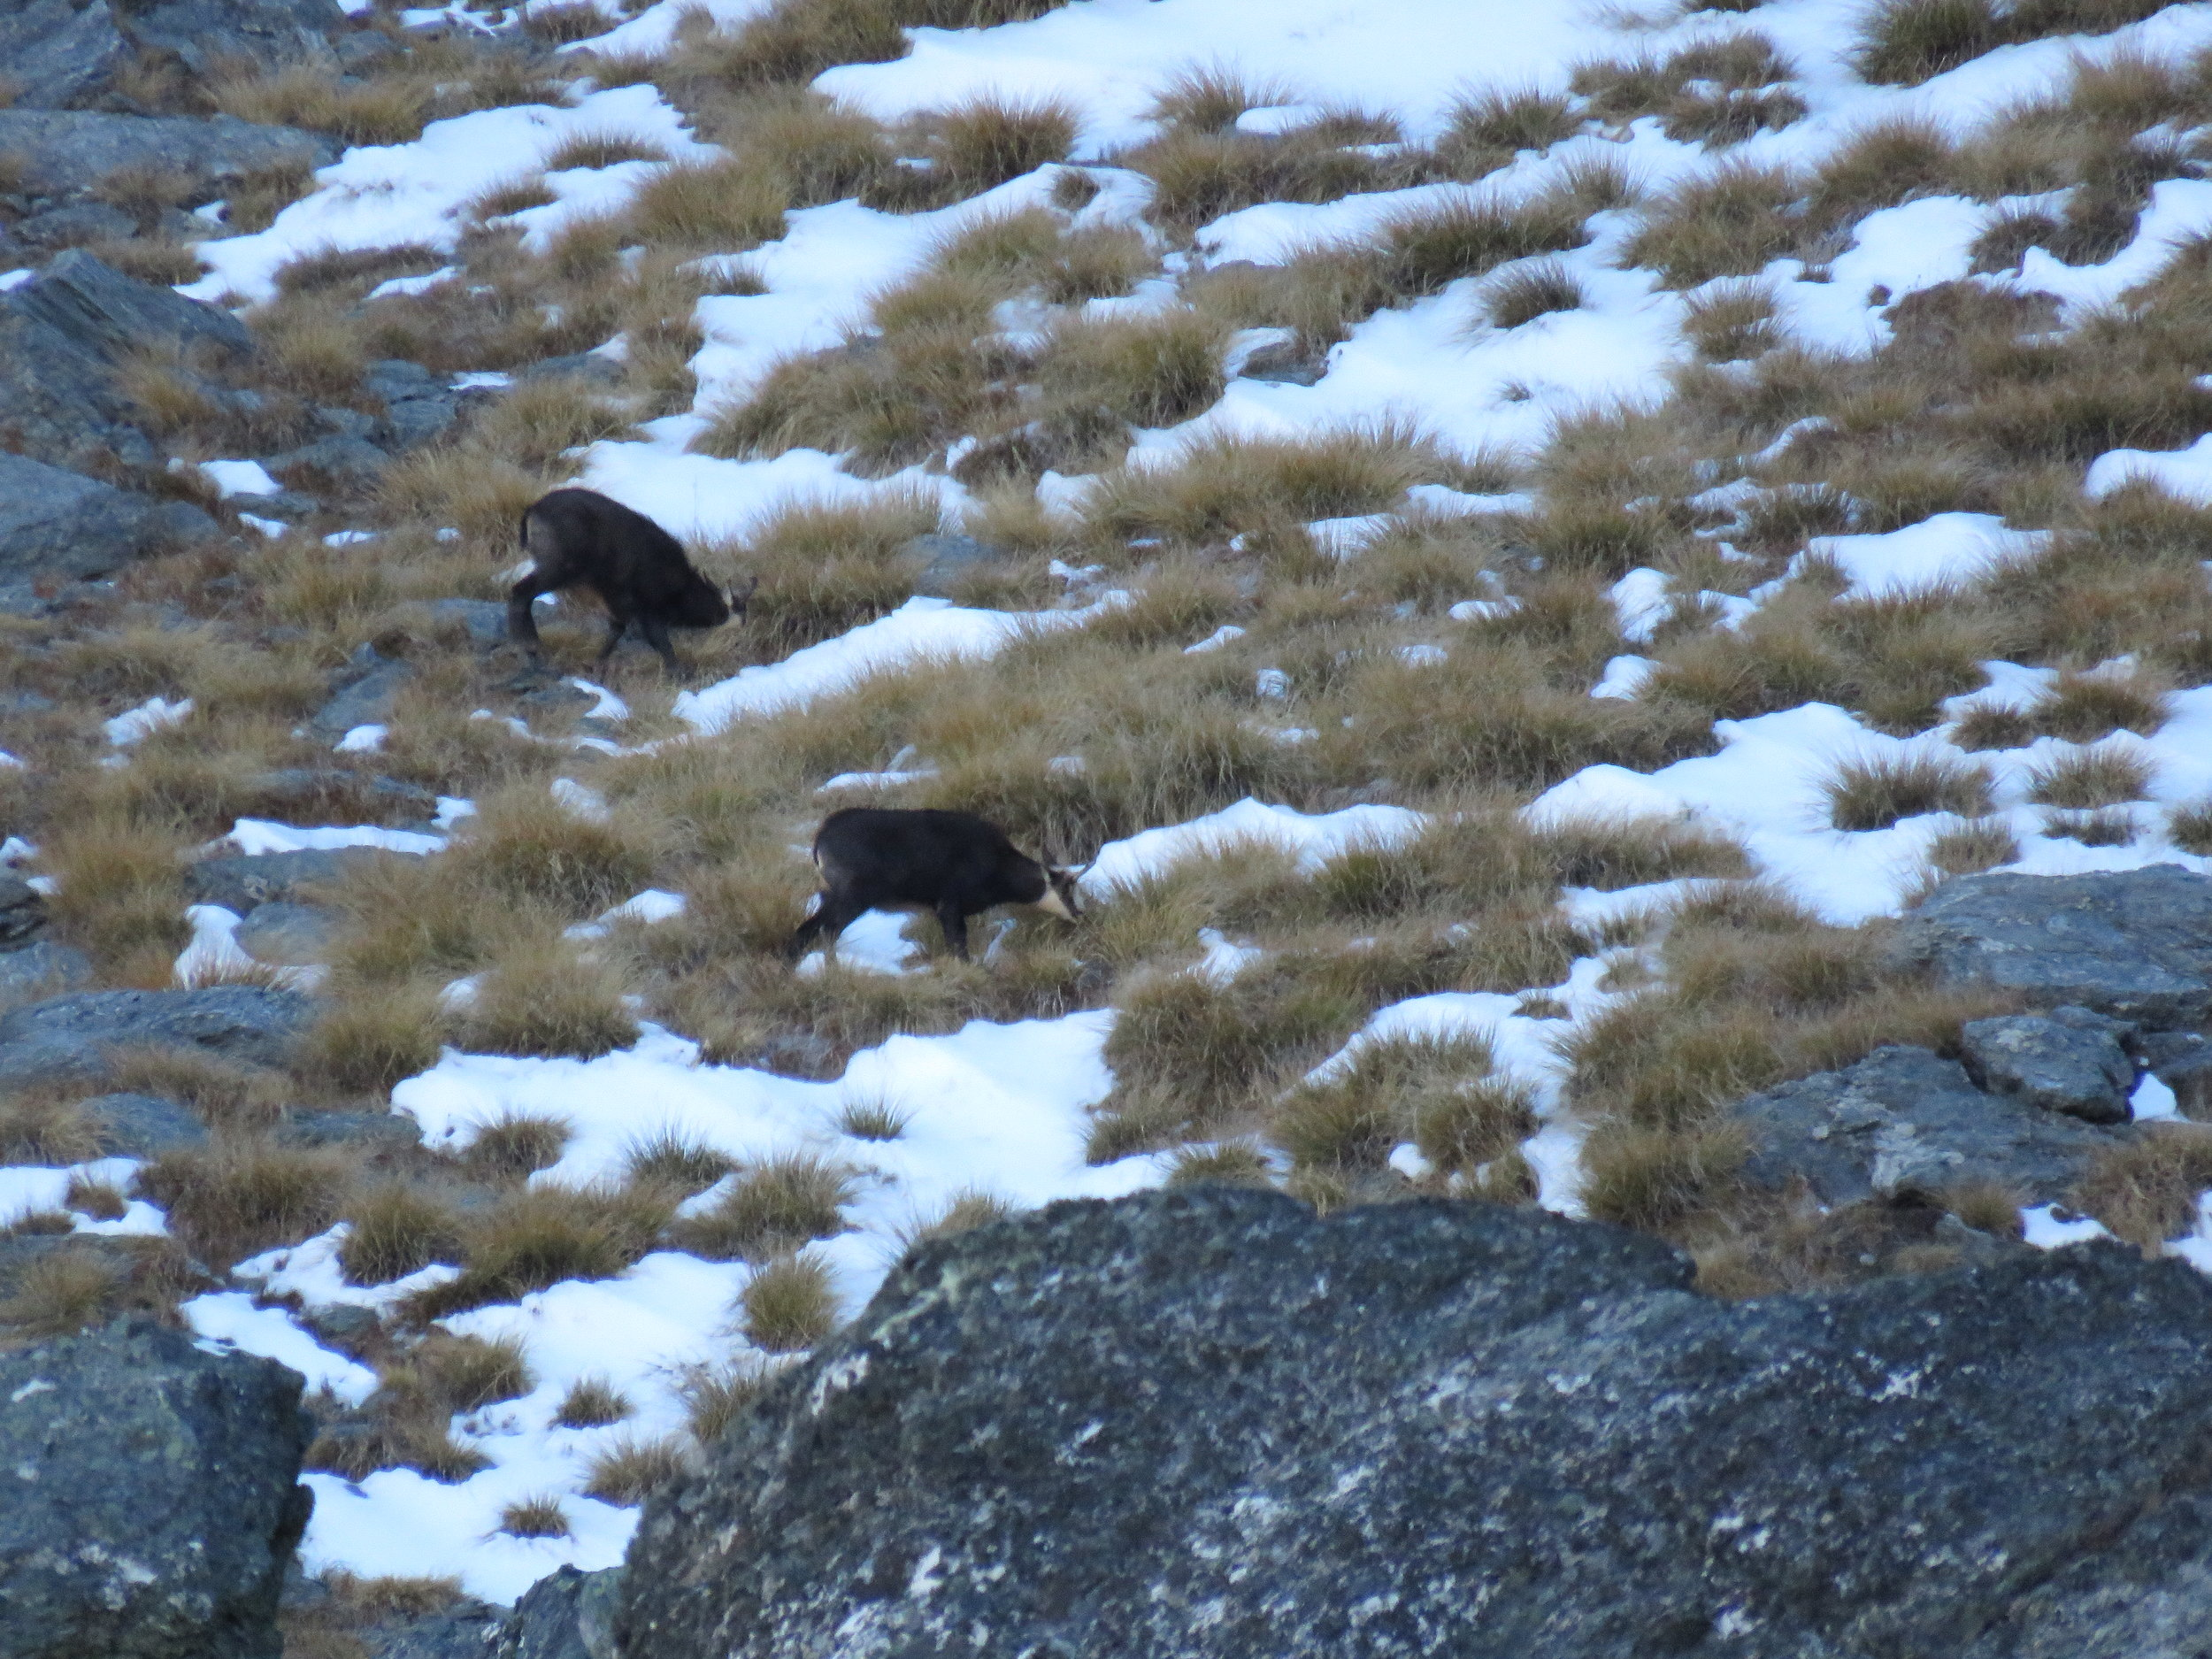 chamois in the snow and tussock